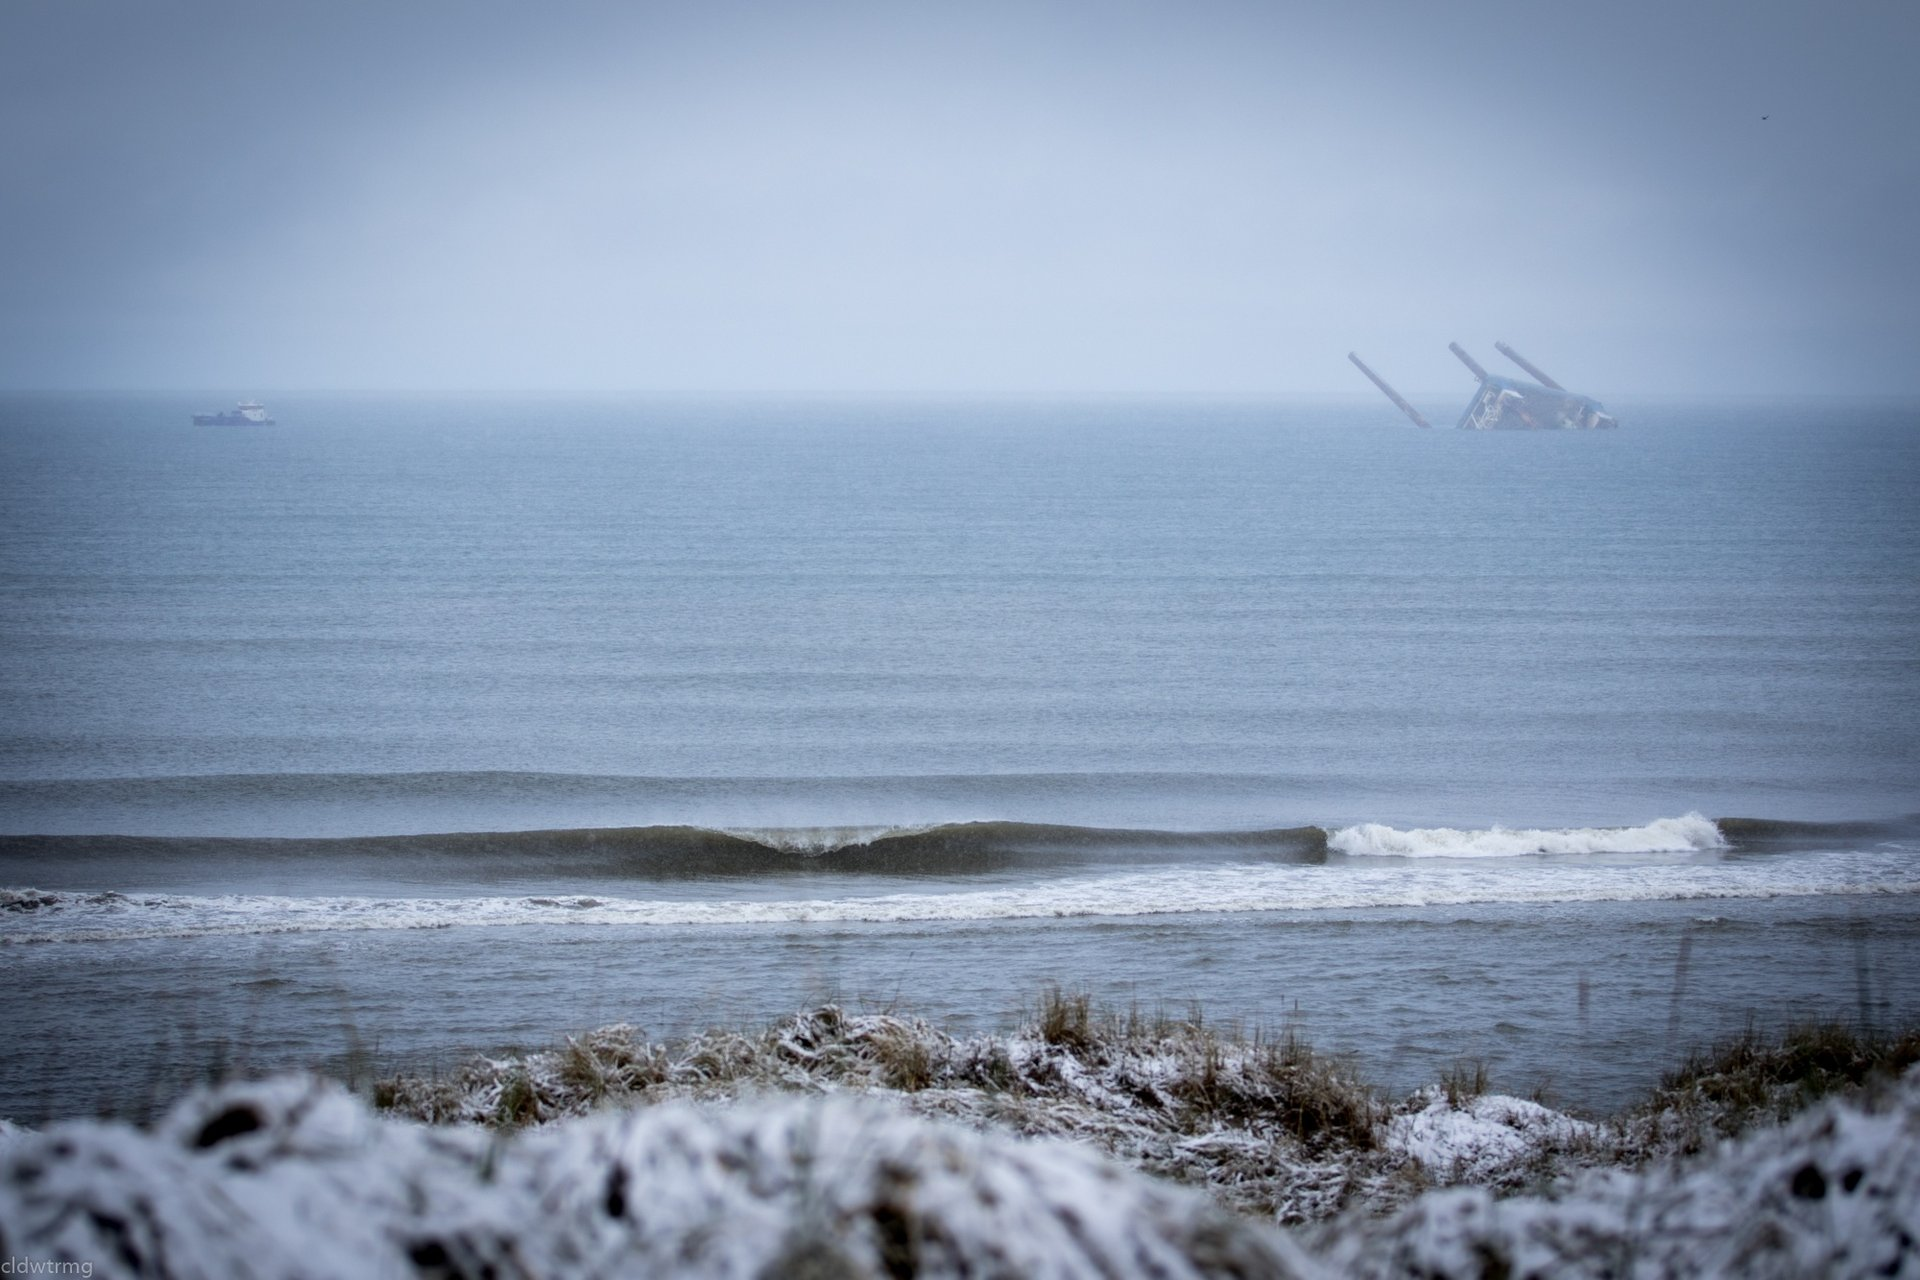 coldwatermag's photo of Hvide Sande